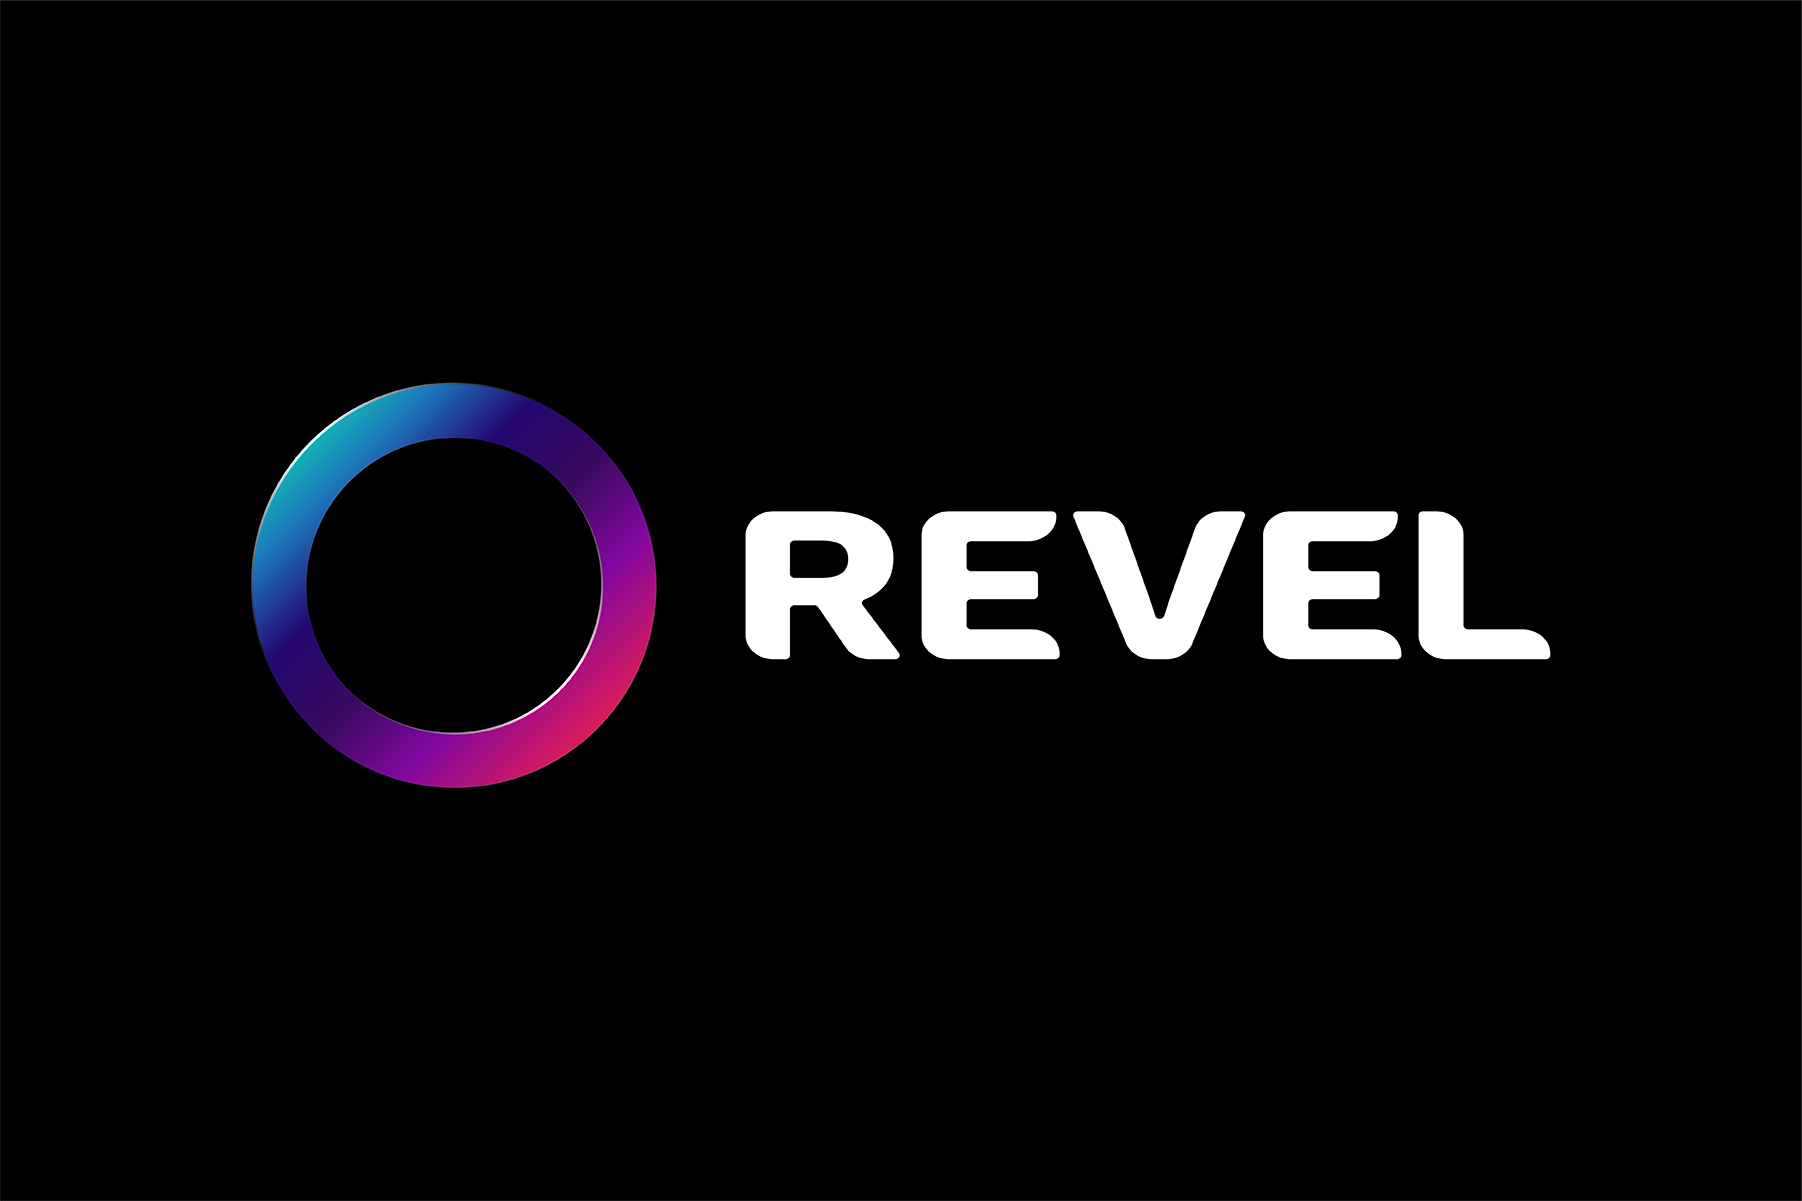 Revel_Logo-Design_1.jpg